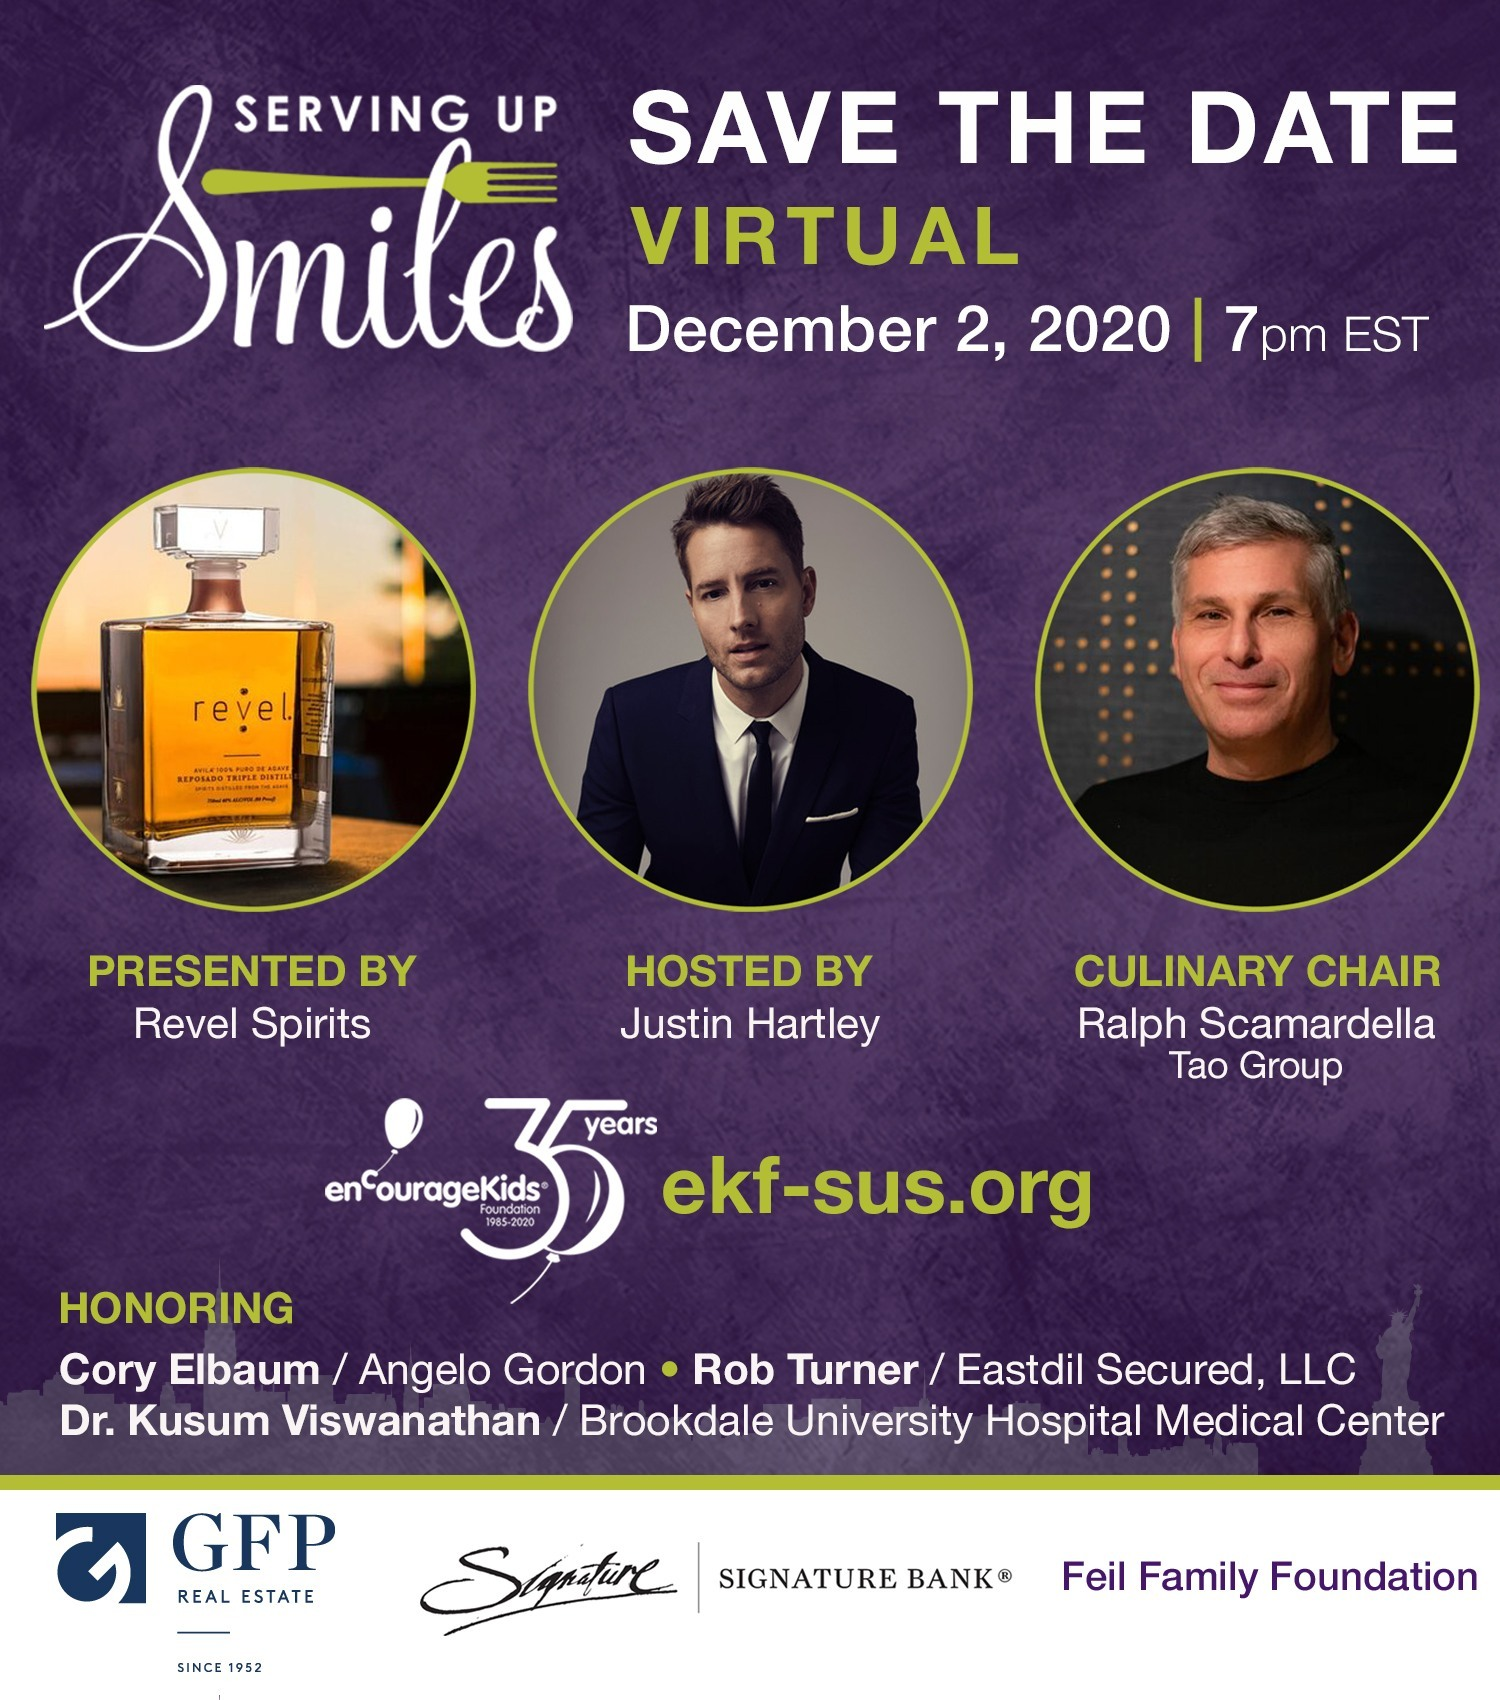 Serving Up Smiles Virtual Event